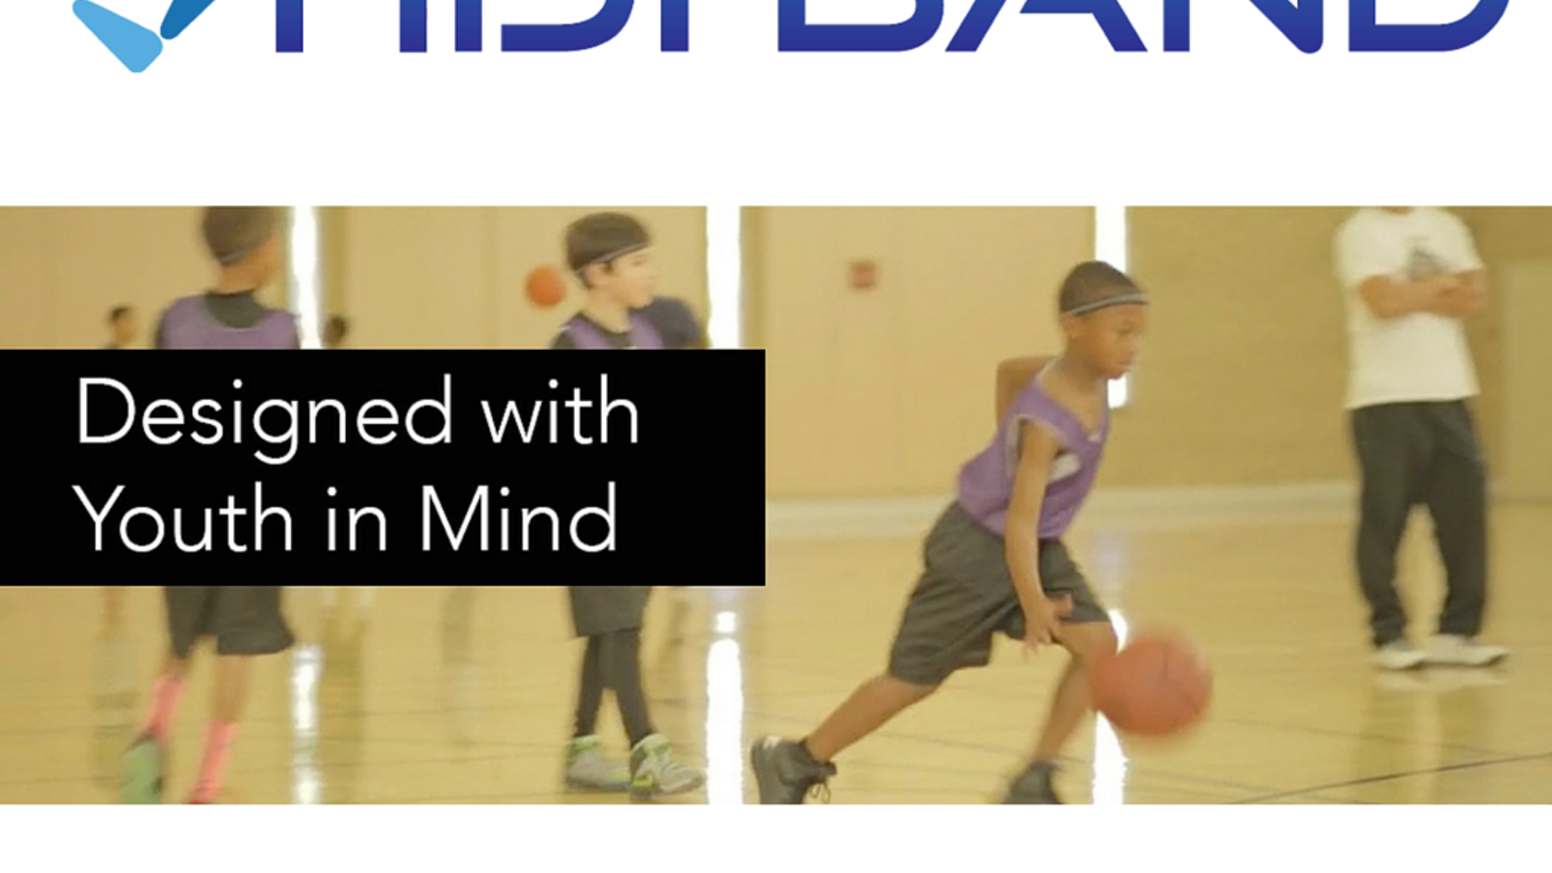 An innovative and effective concussion detection & reporting wearable technology available for youth in sports today!